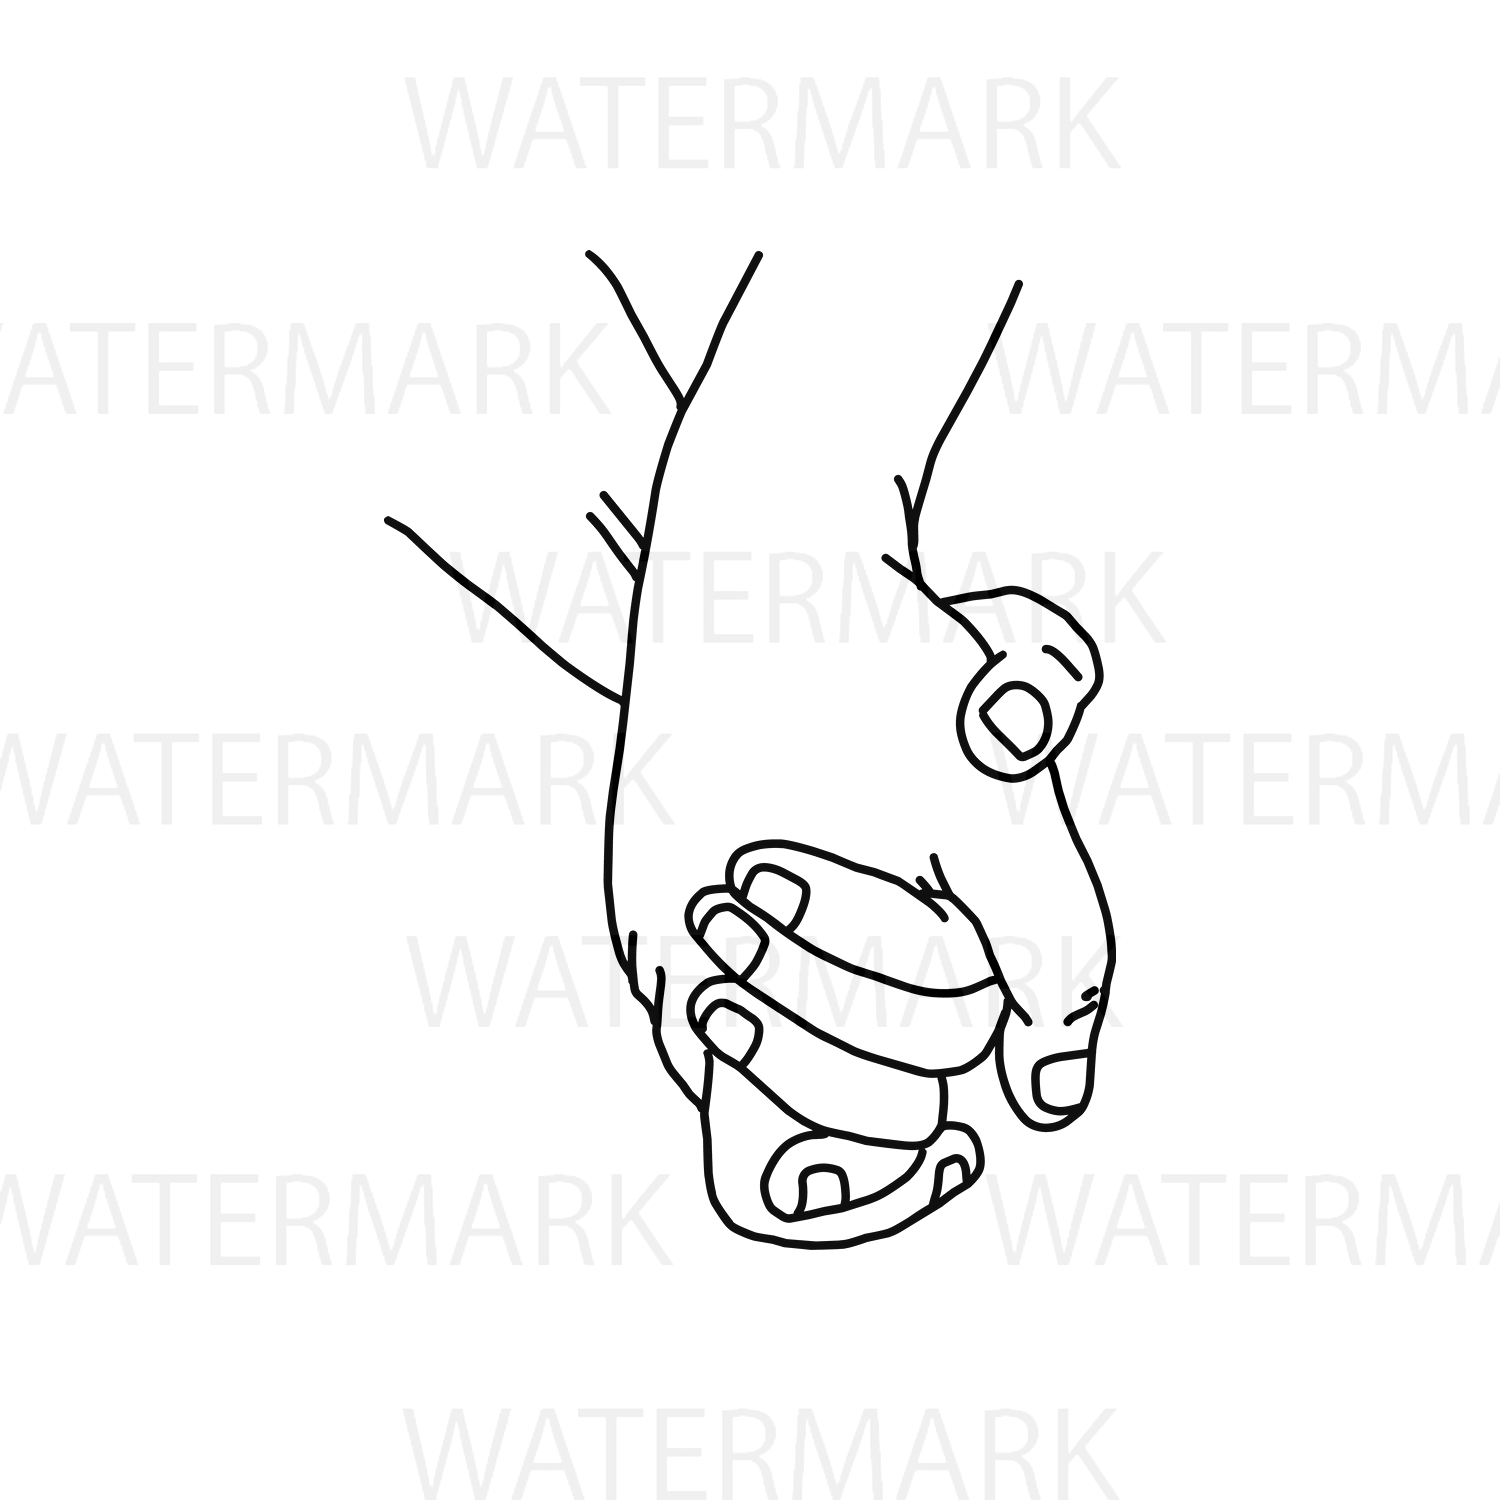 Holding Hand and walk along with love - SVG/JPG/PNG Hand Drawing example image 3